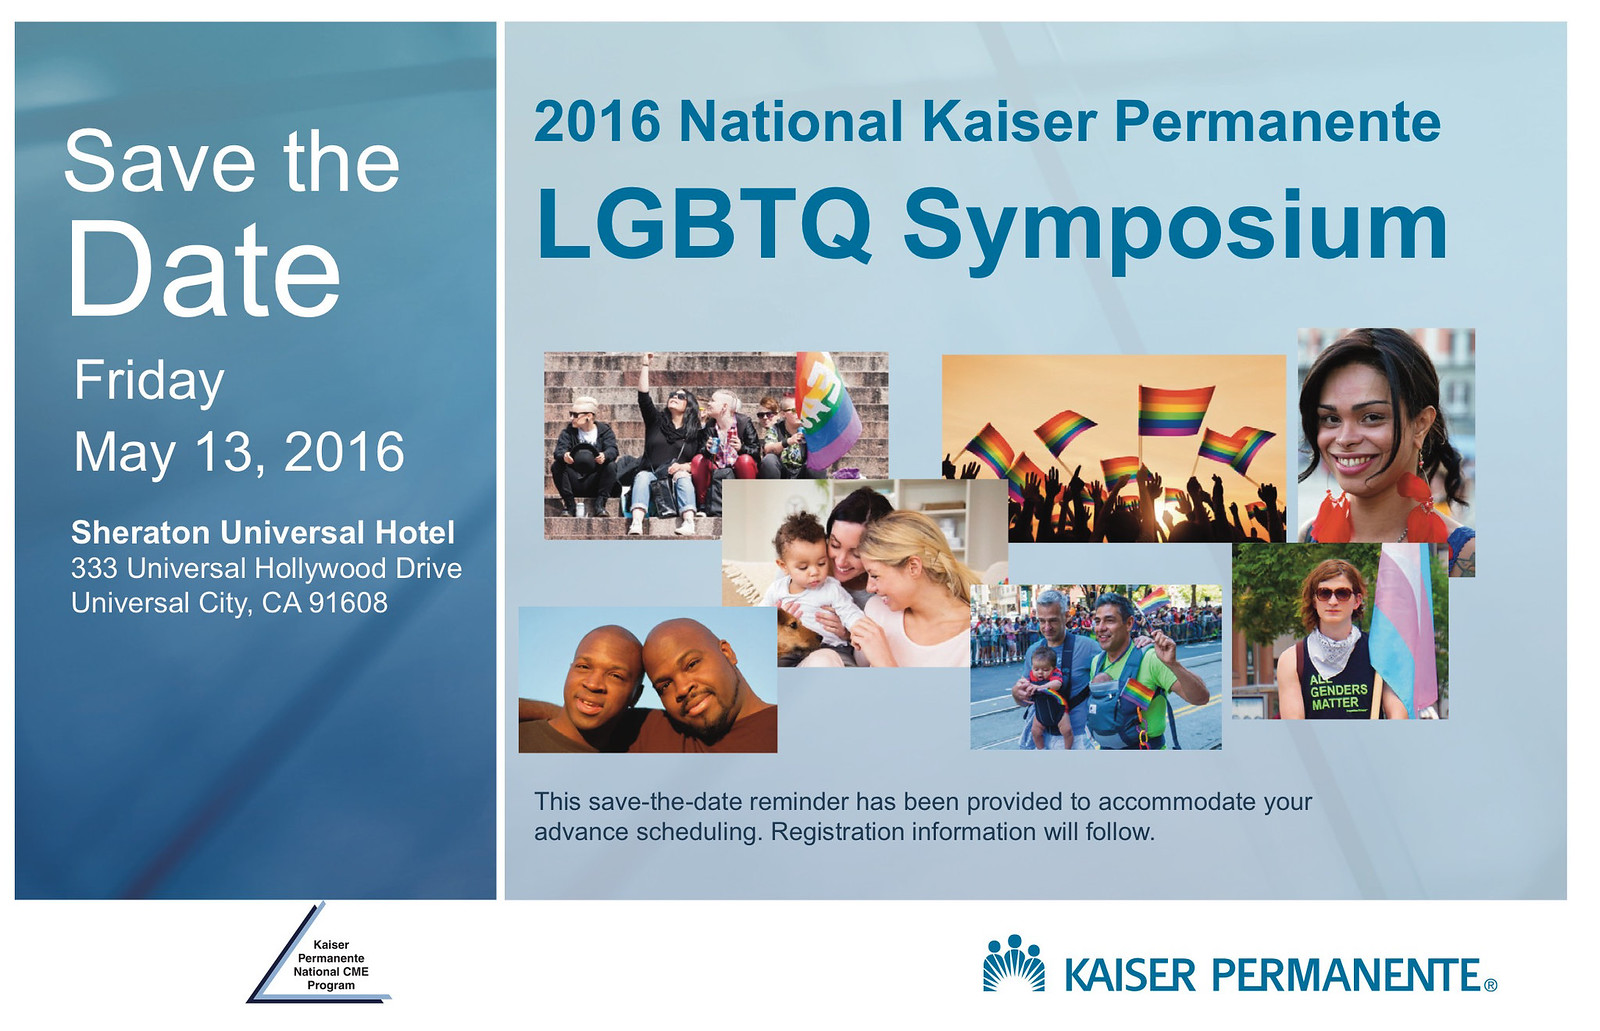 National Kaiser Permanente LGBTQ Symposium Save the Date 160210